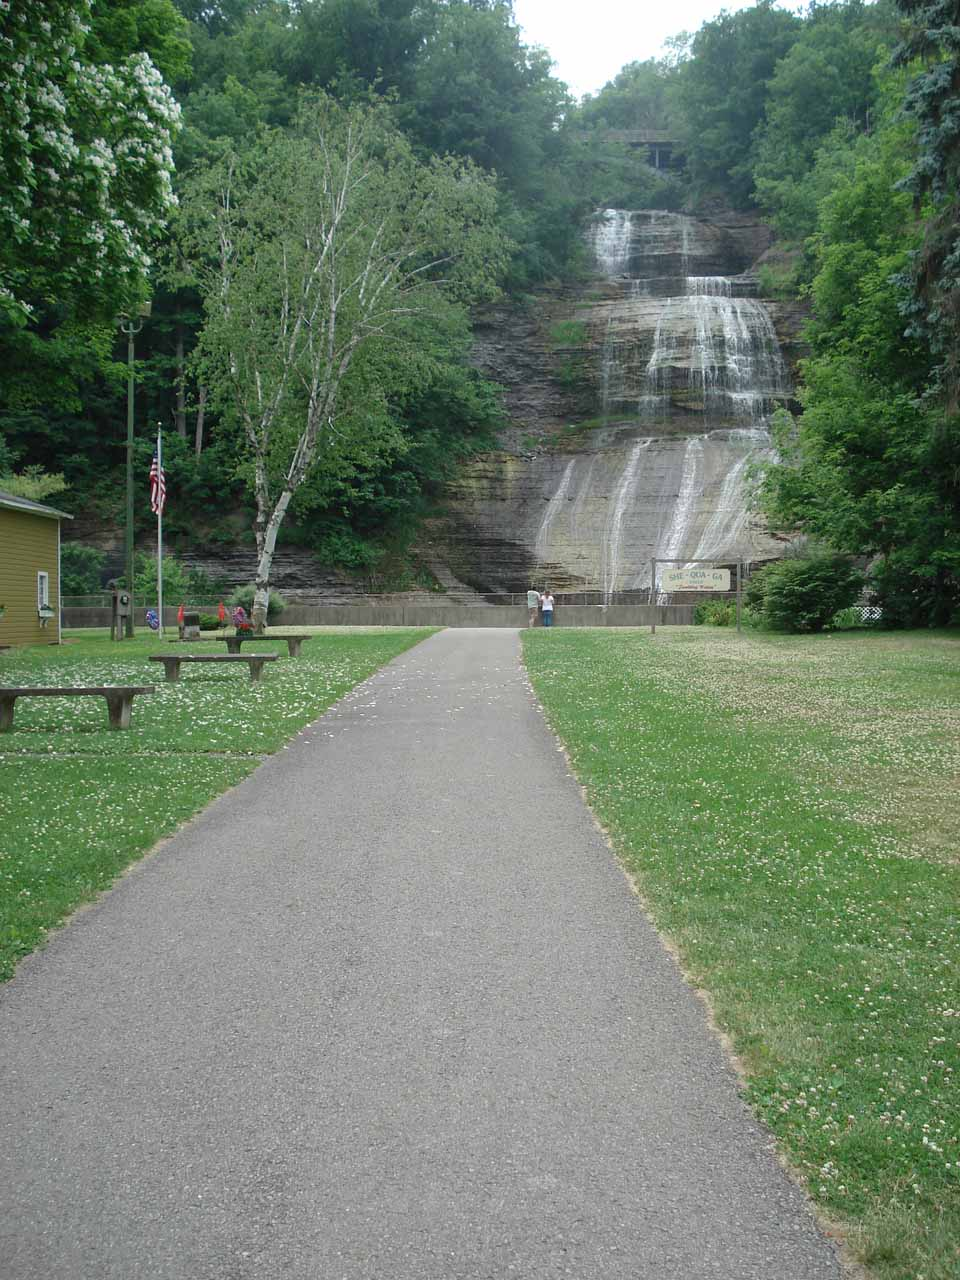 The walk leading up to the falls with flowers blooming on the grass